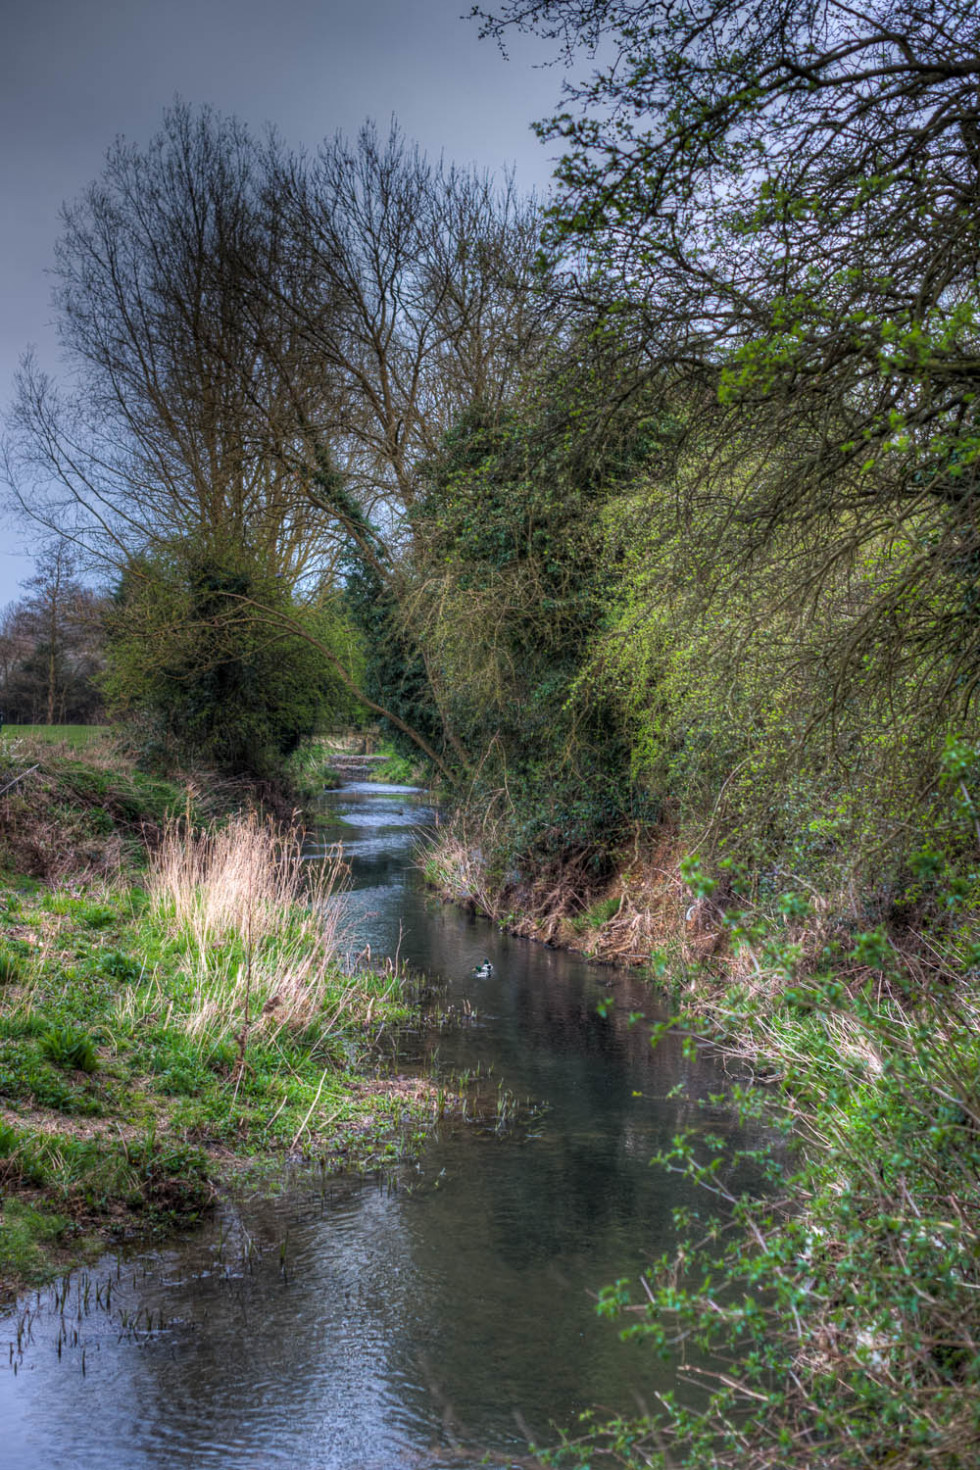 089/365v2 The River Stort, Dunmow